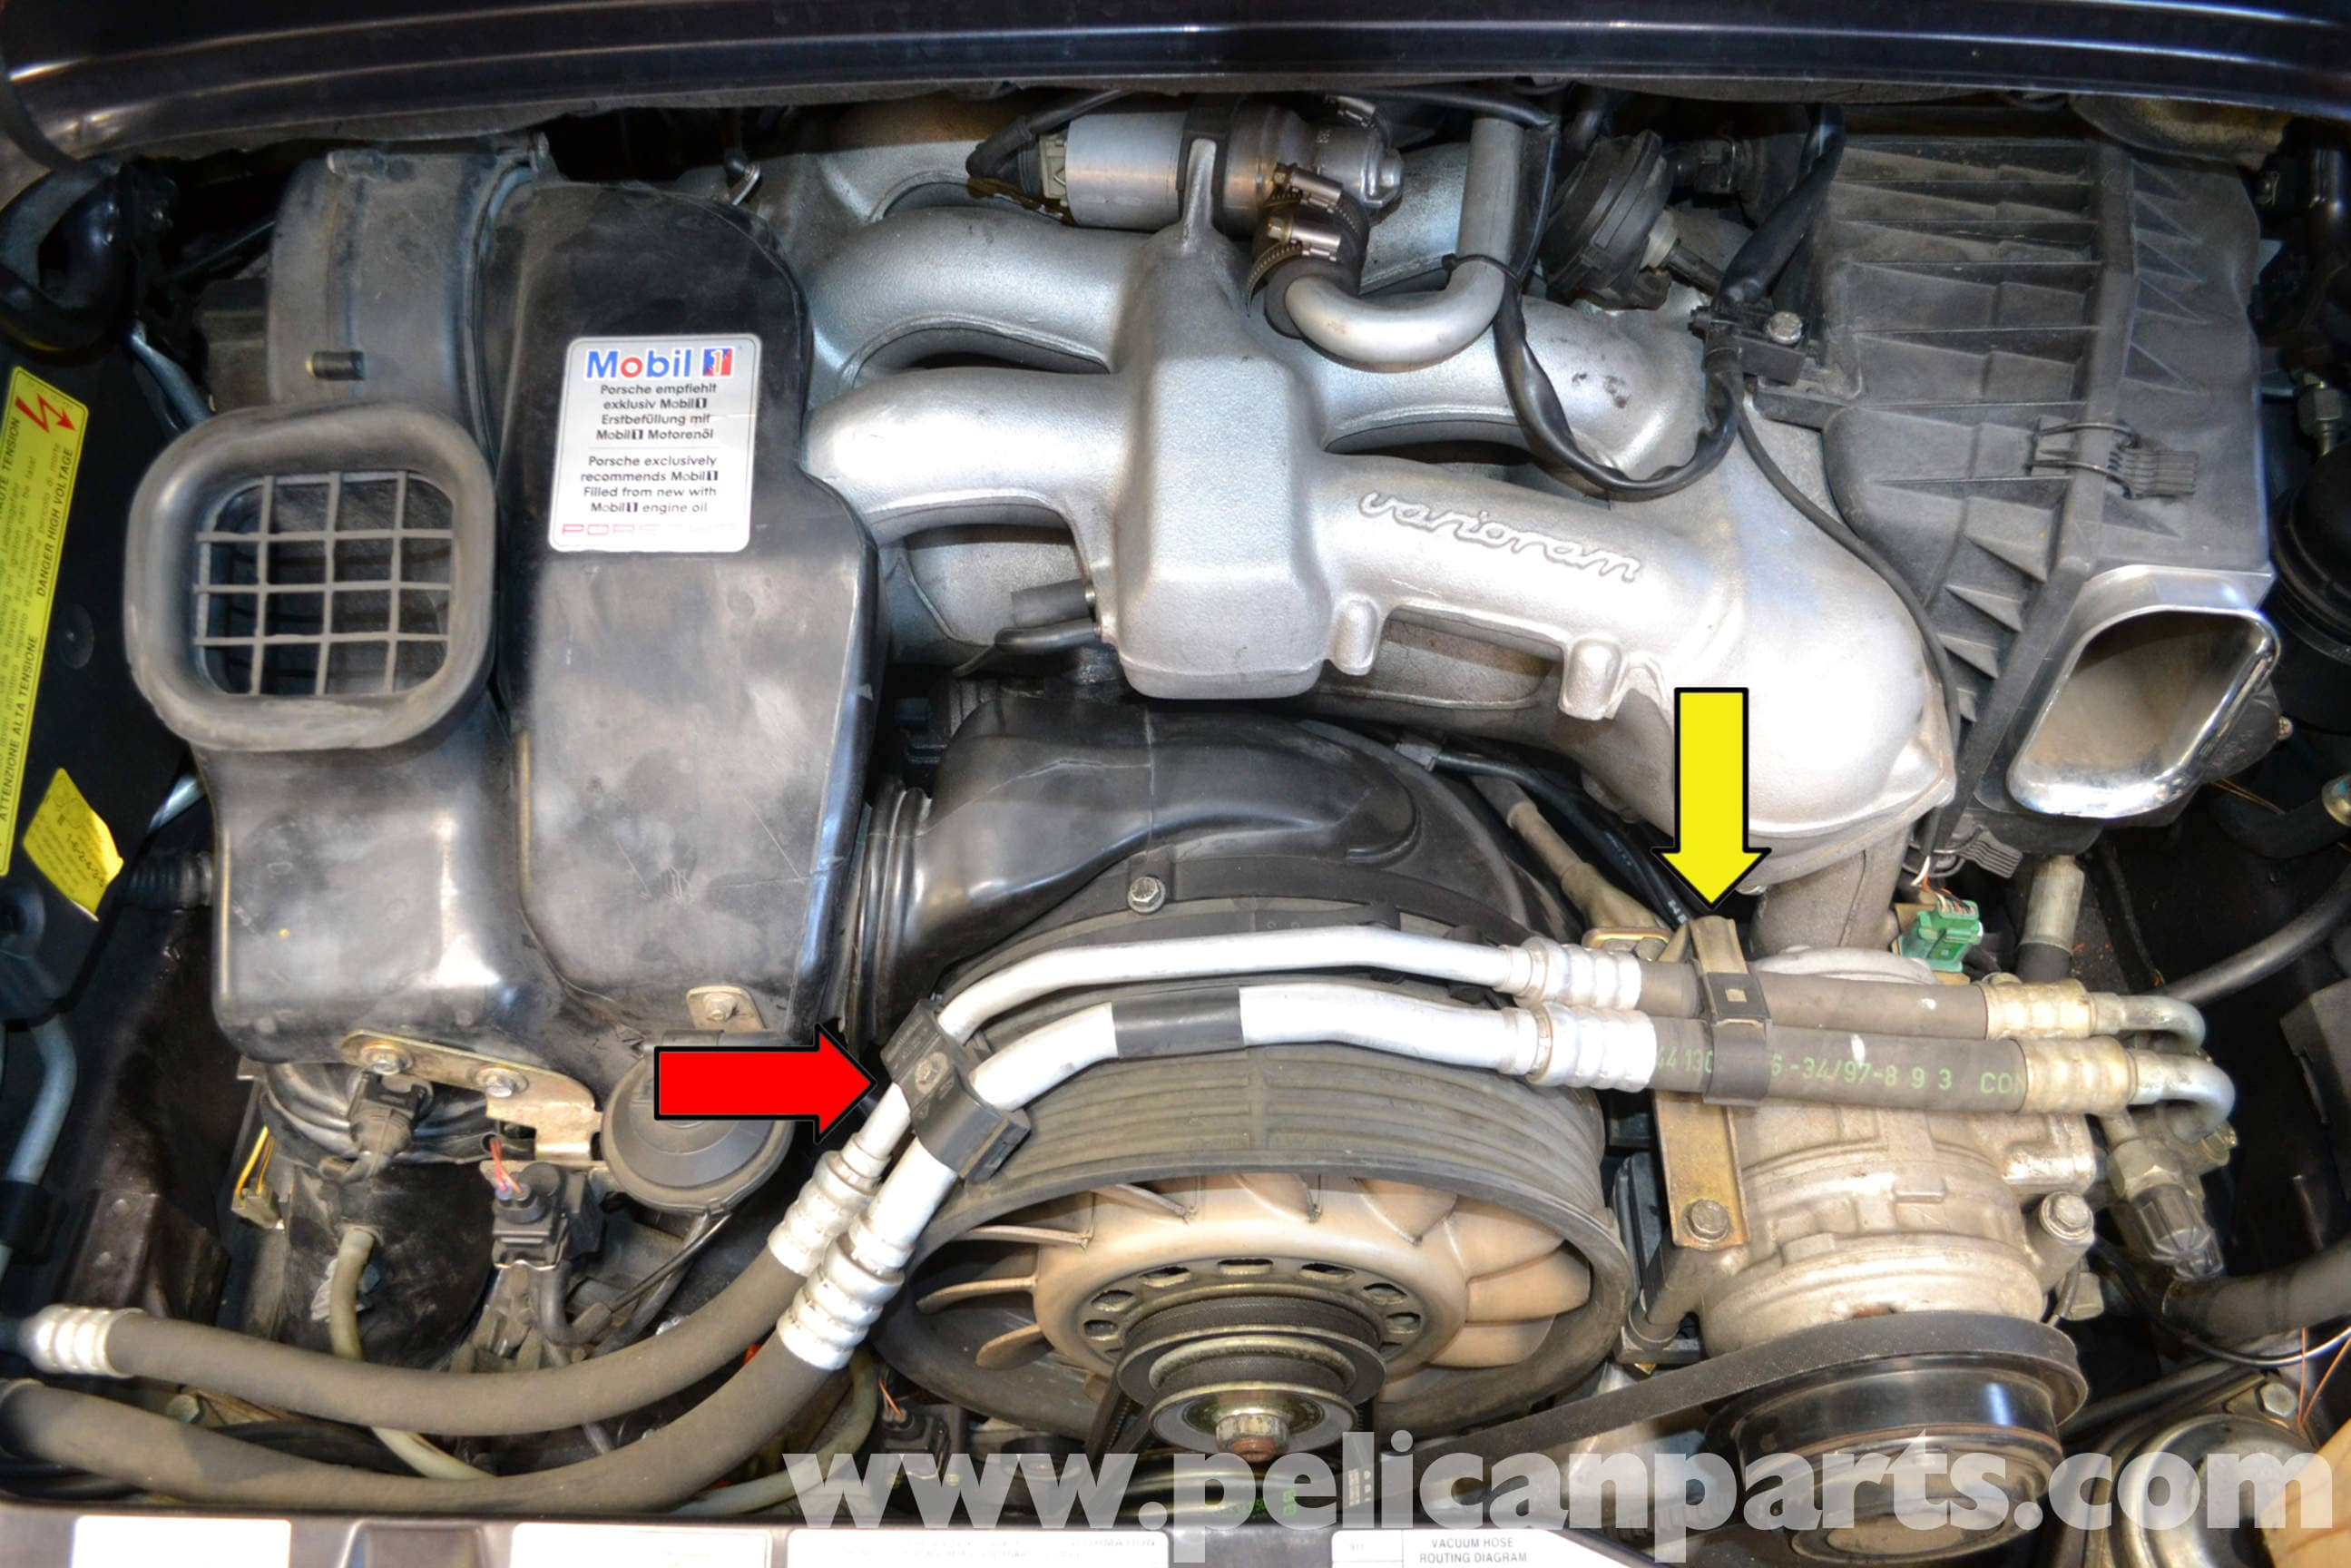 Pelican Technical Article Porsche 993 A C Belt Replacement 365 Engine Diagram Large Image Extra